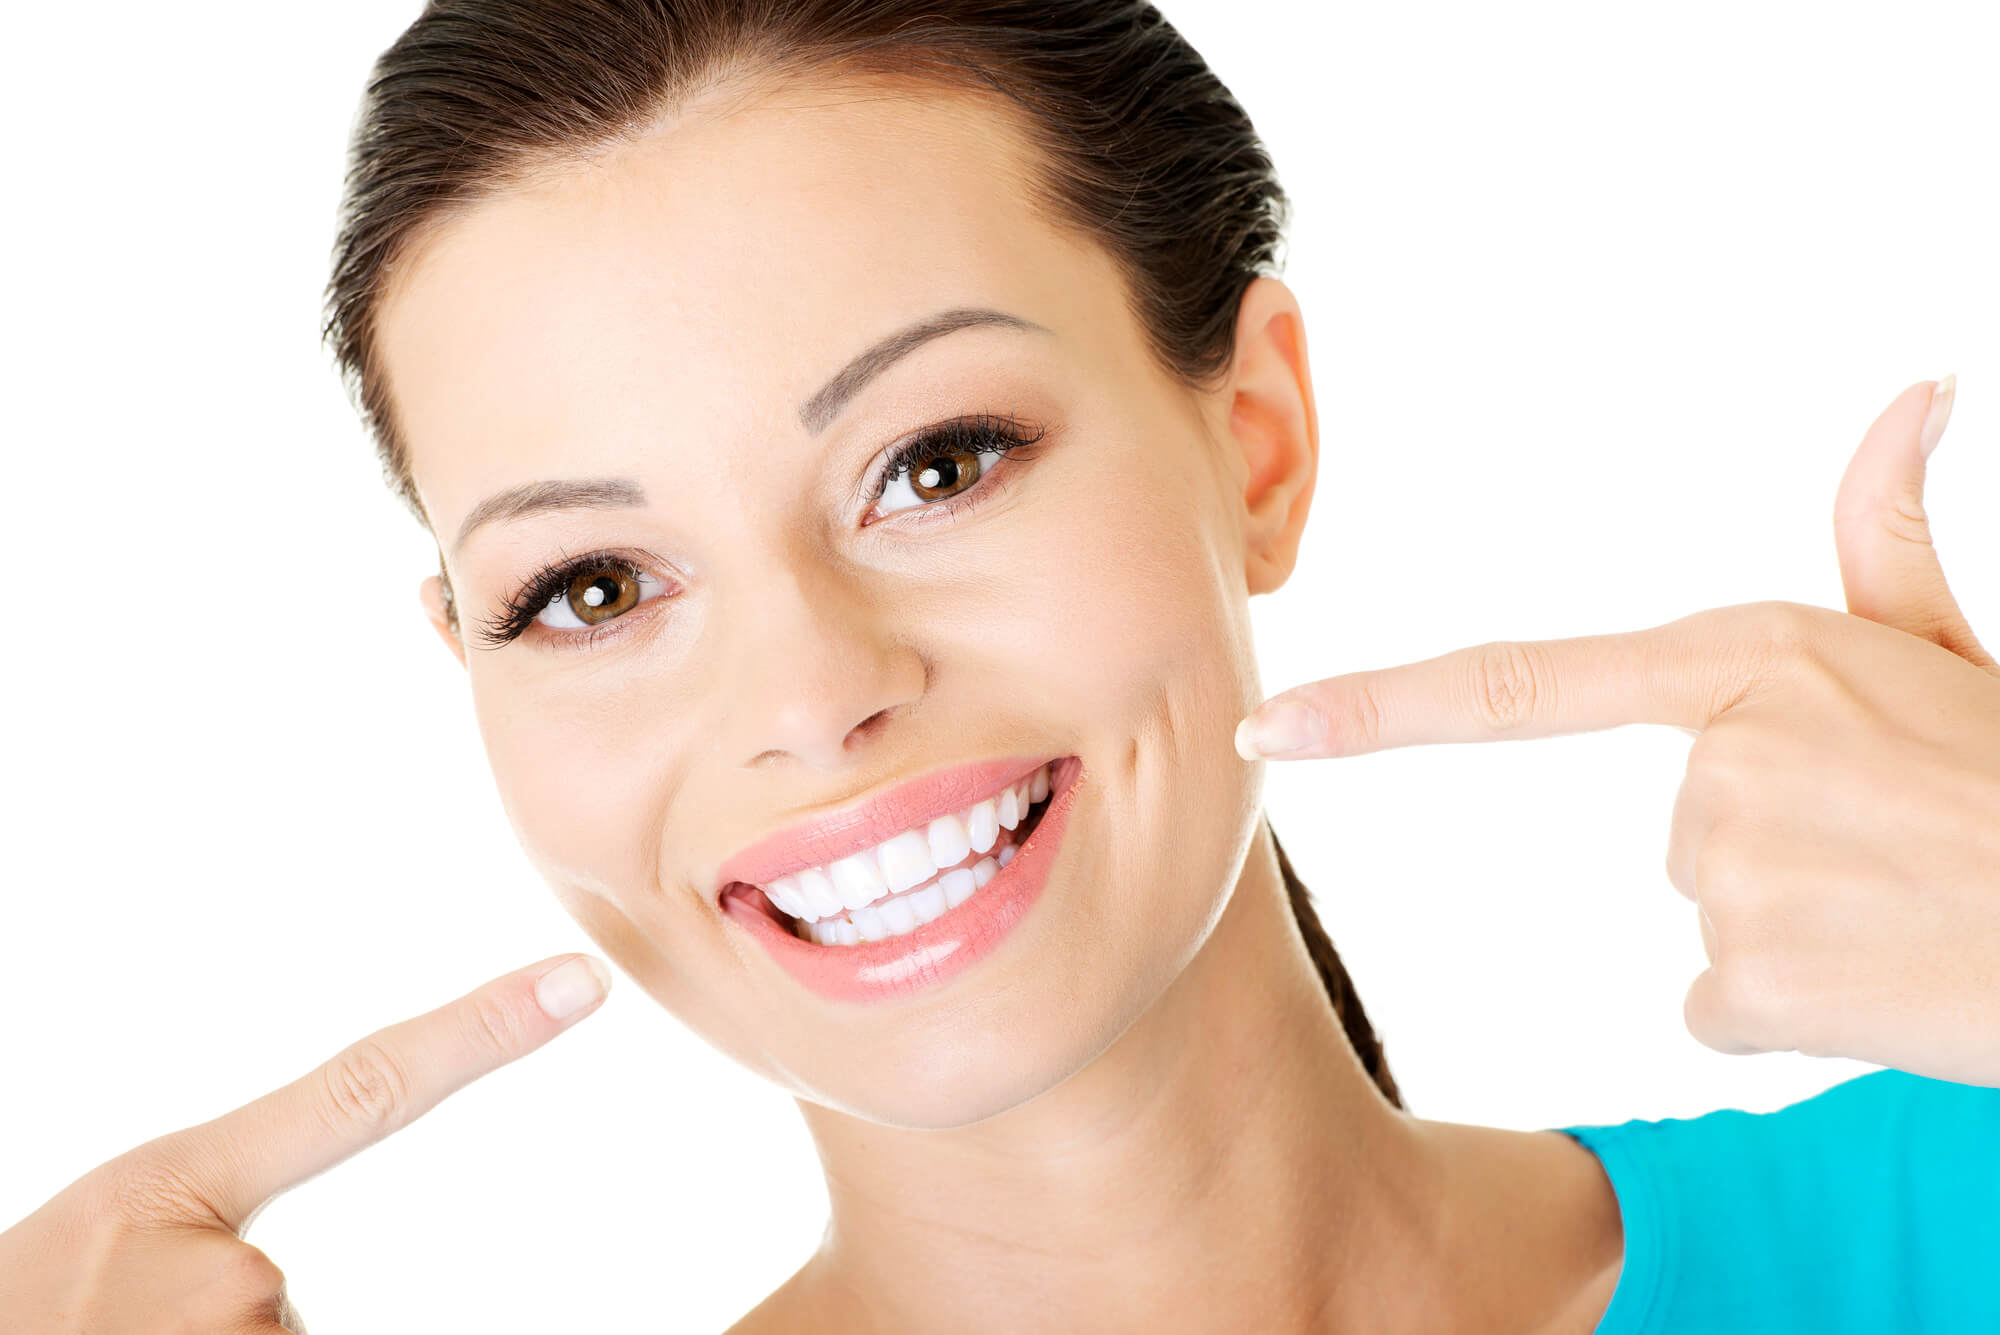 where is the best place to get veneers boynton beach?